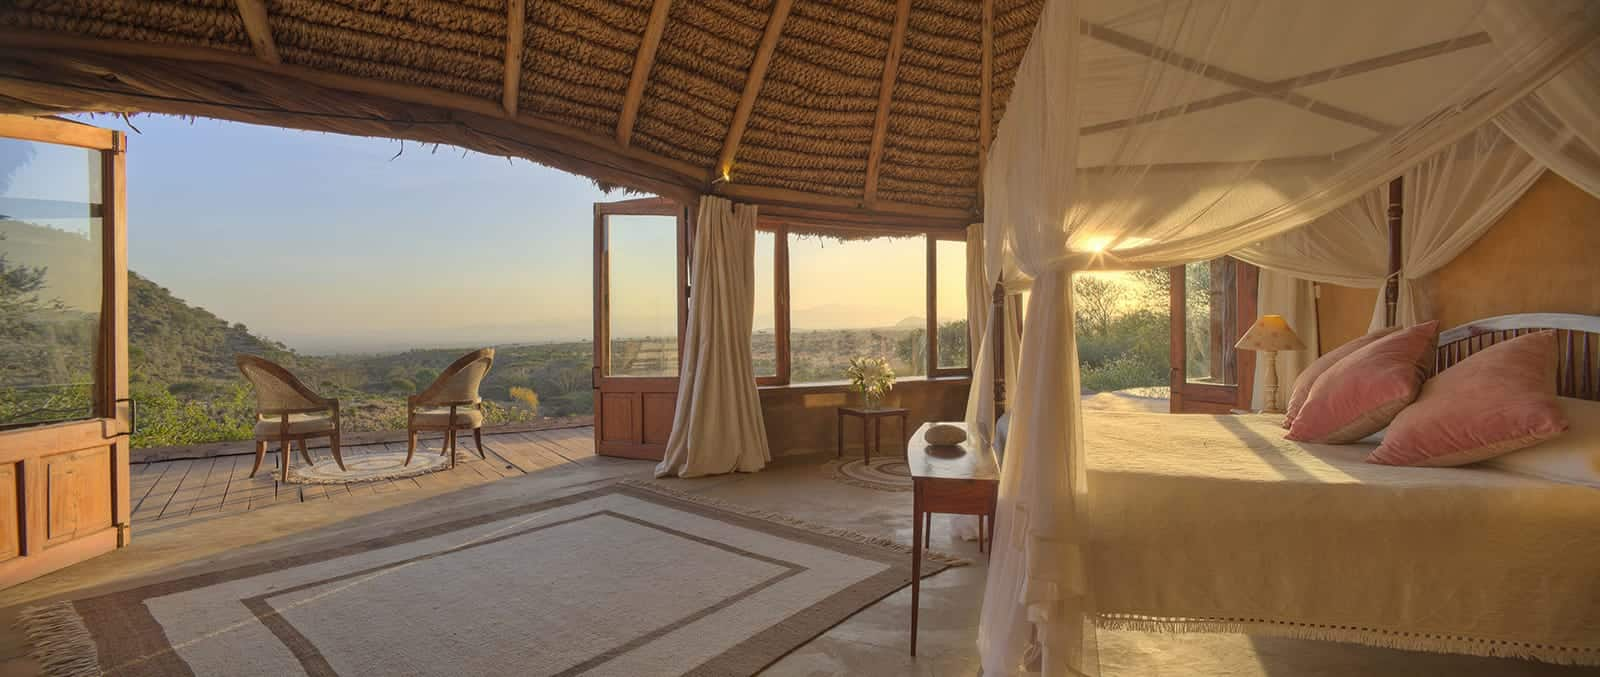 Lewa Wilderness rooms interior